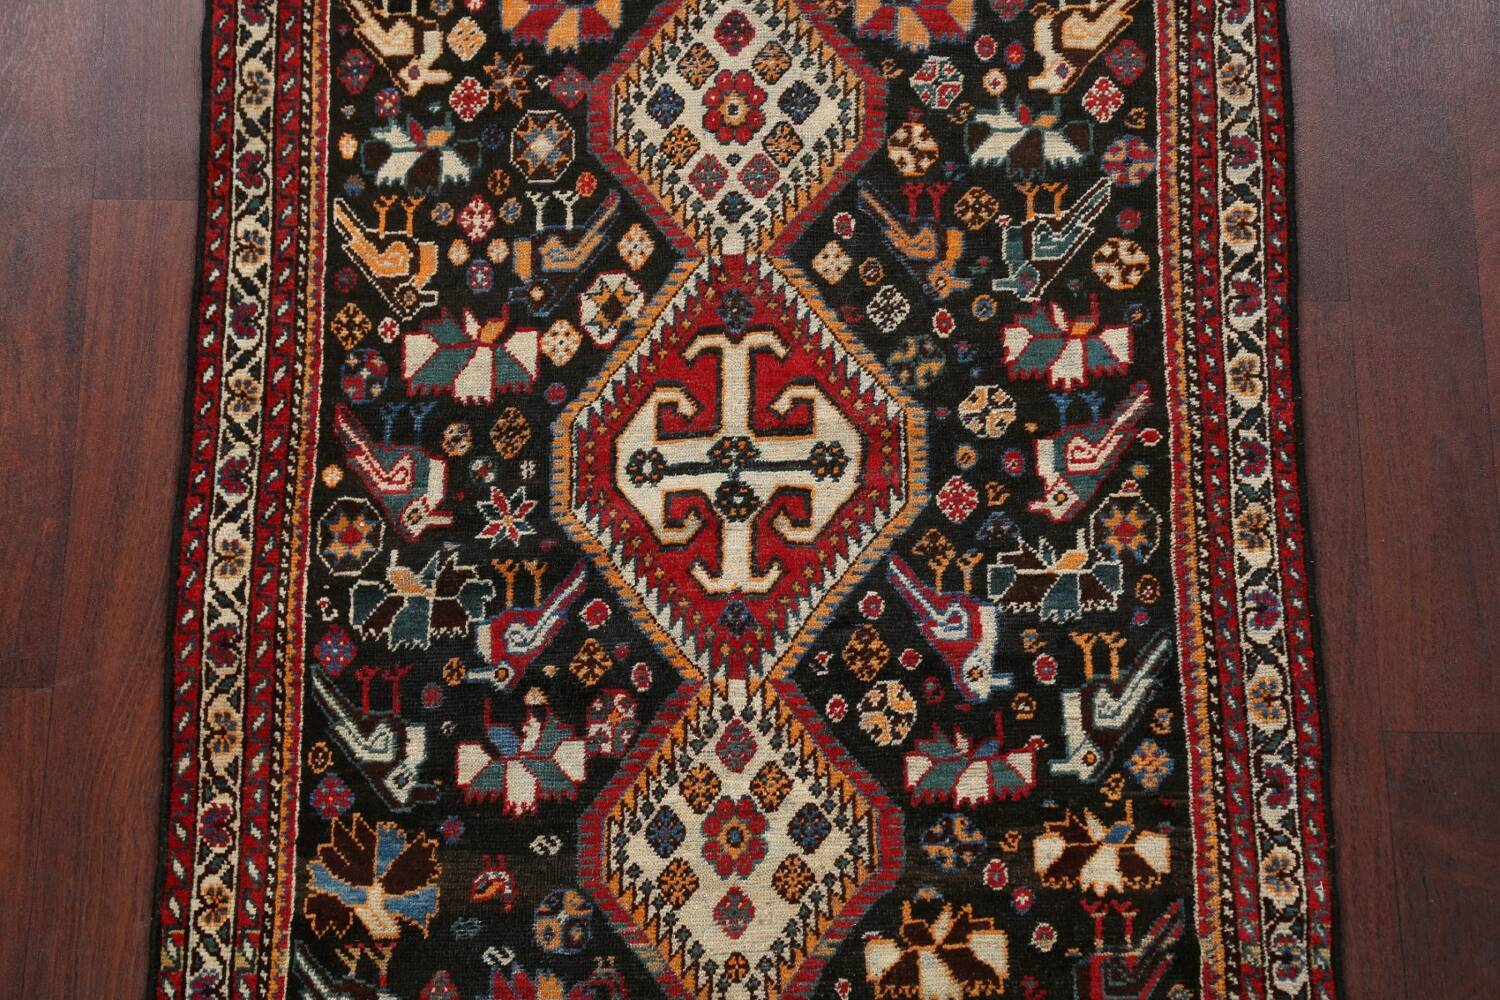 Antique Pre-1900 Tribal Bakhtiari Persian Area Rug 4x5 image 3